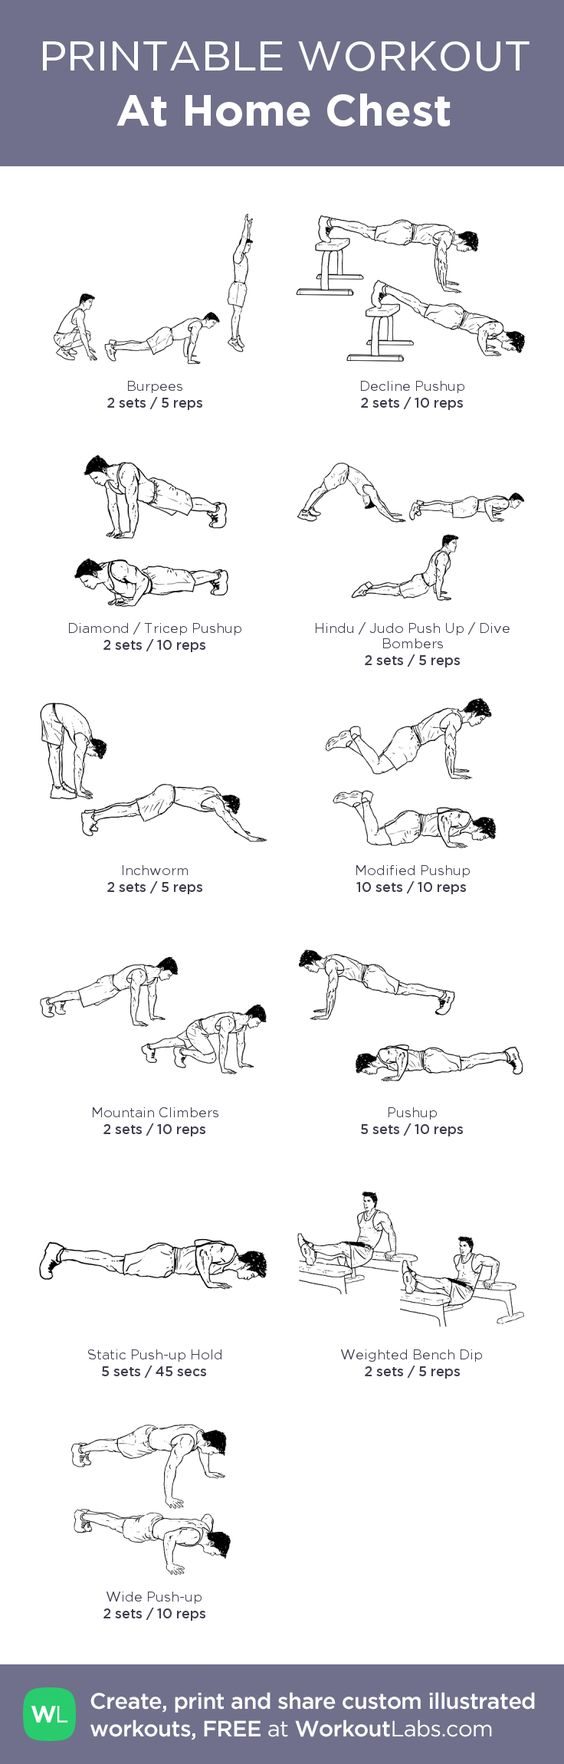 At Home Chest Workout